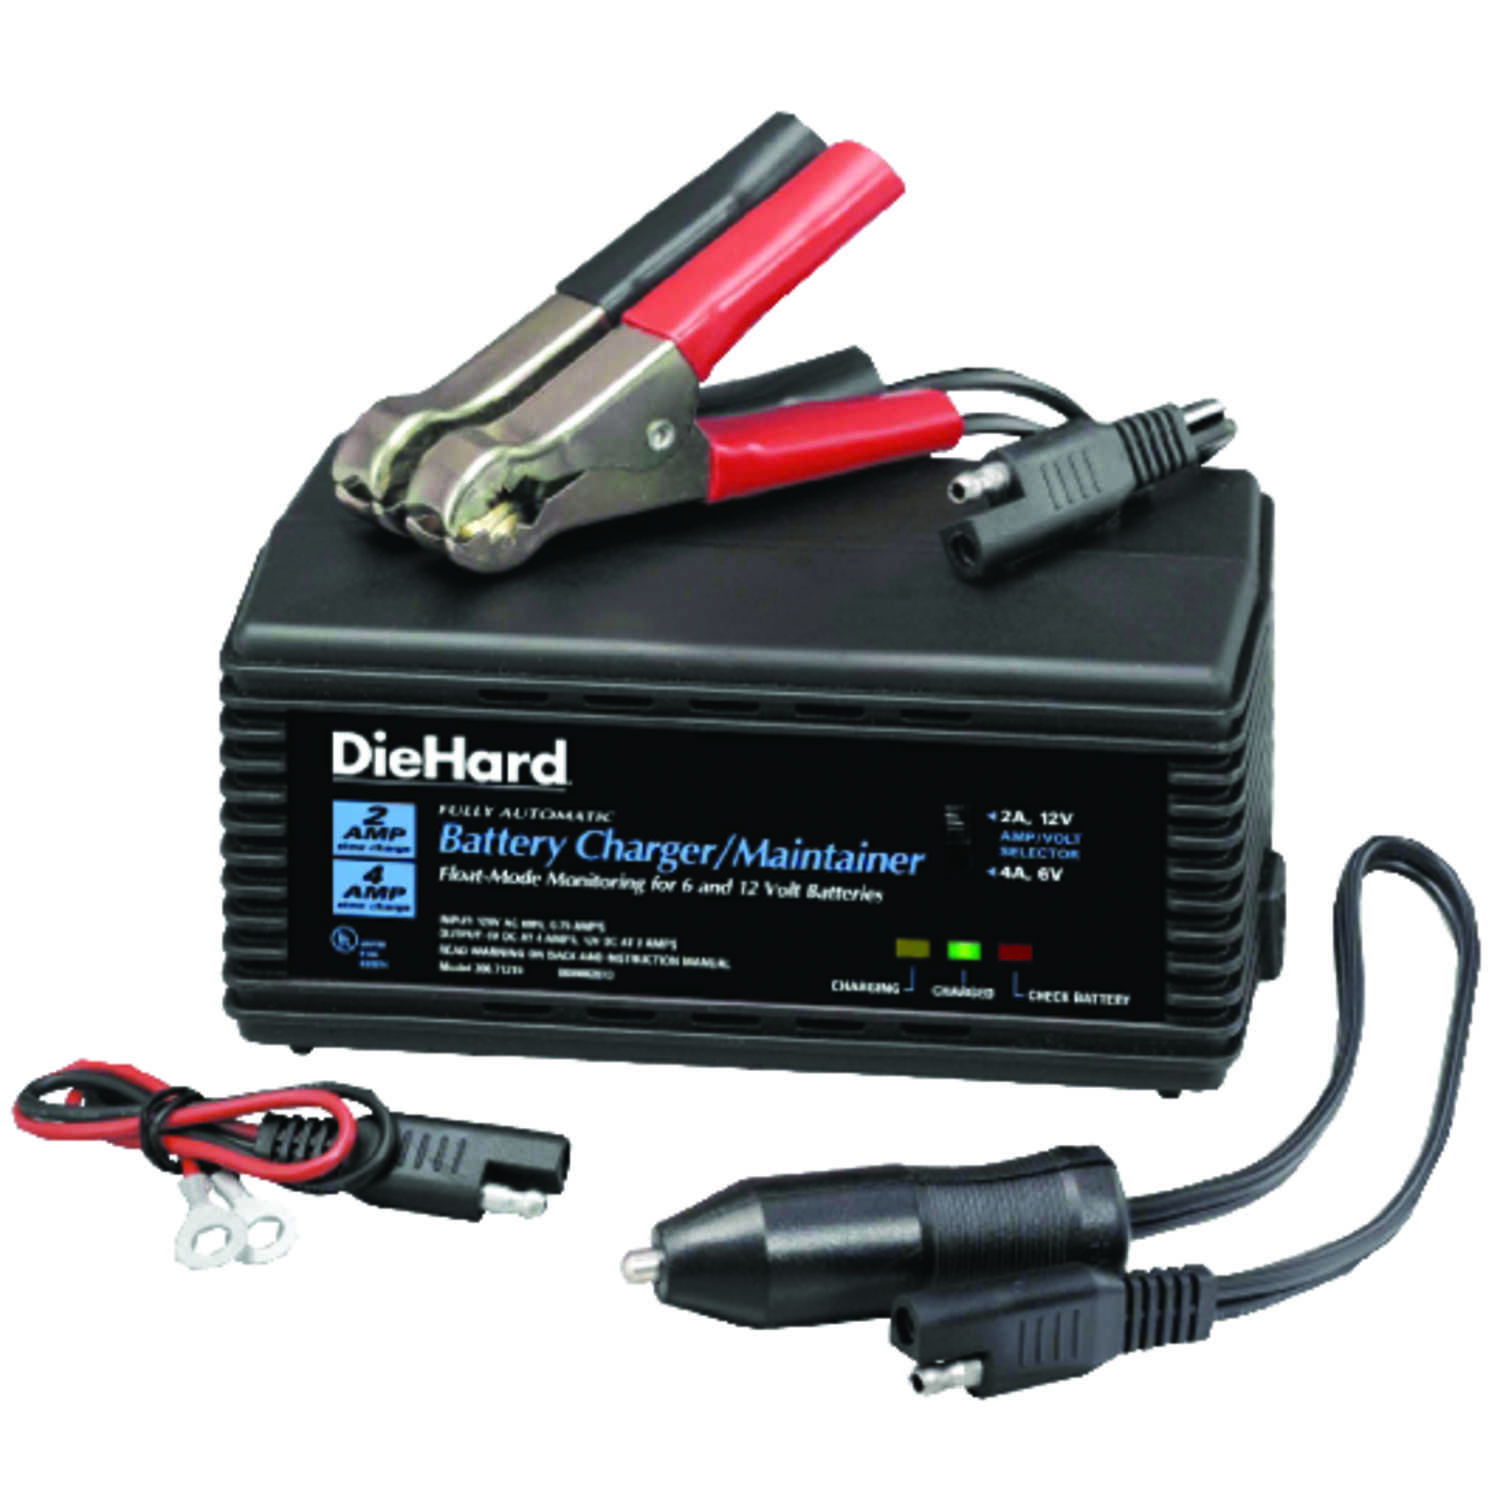 DieHard Automatic 6/12 Volt 2 Amps Battery Charger